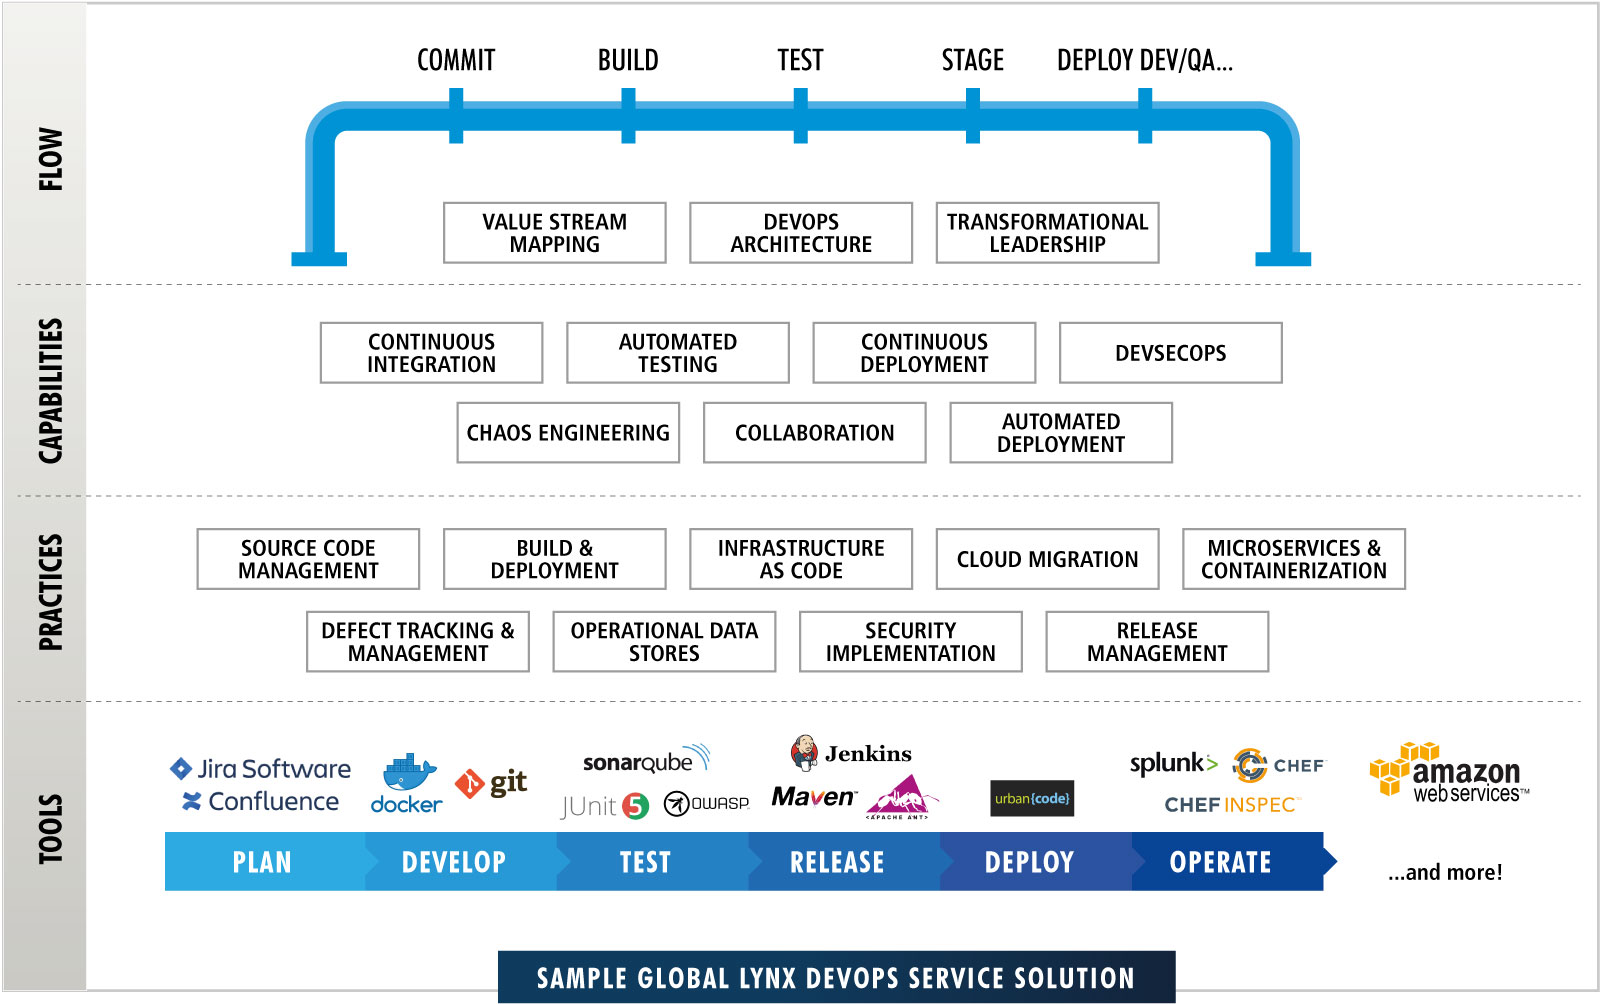 Sample Global Lynx DevOps Service Solution